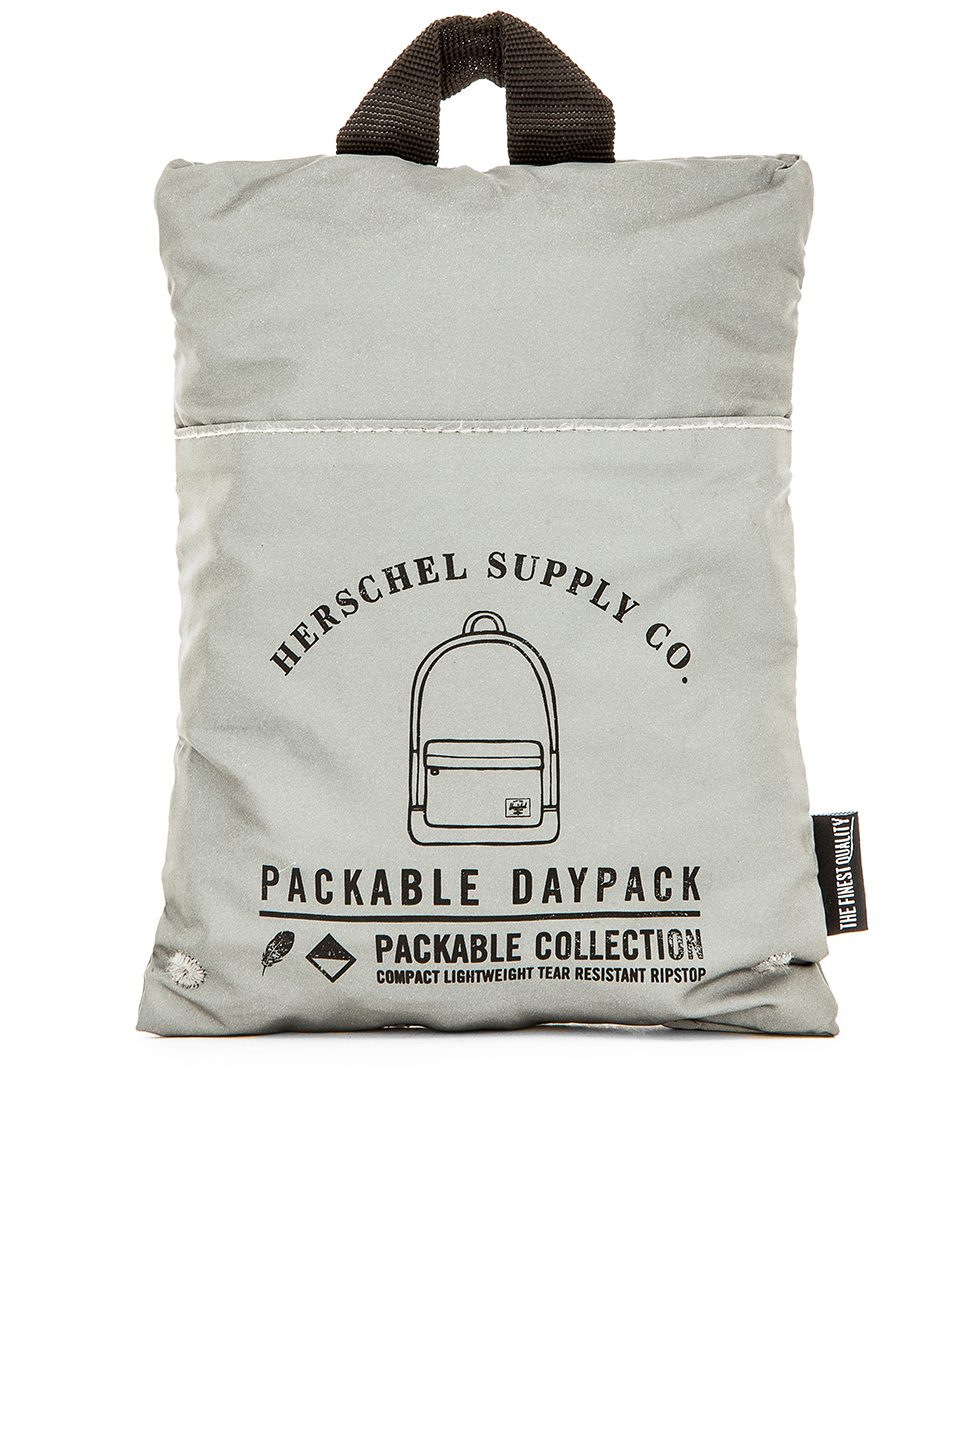 Lyst - Herschel Supply Co. 3m Day   Night Collection Packable ... 7ecaac728657e